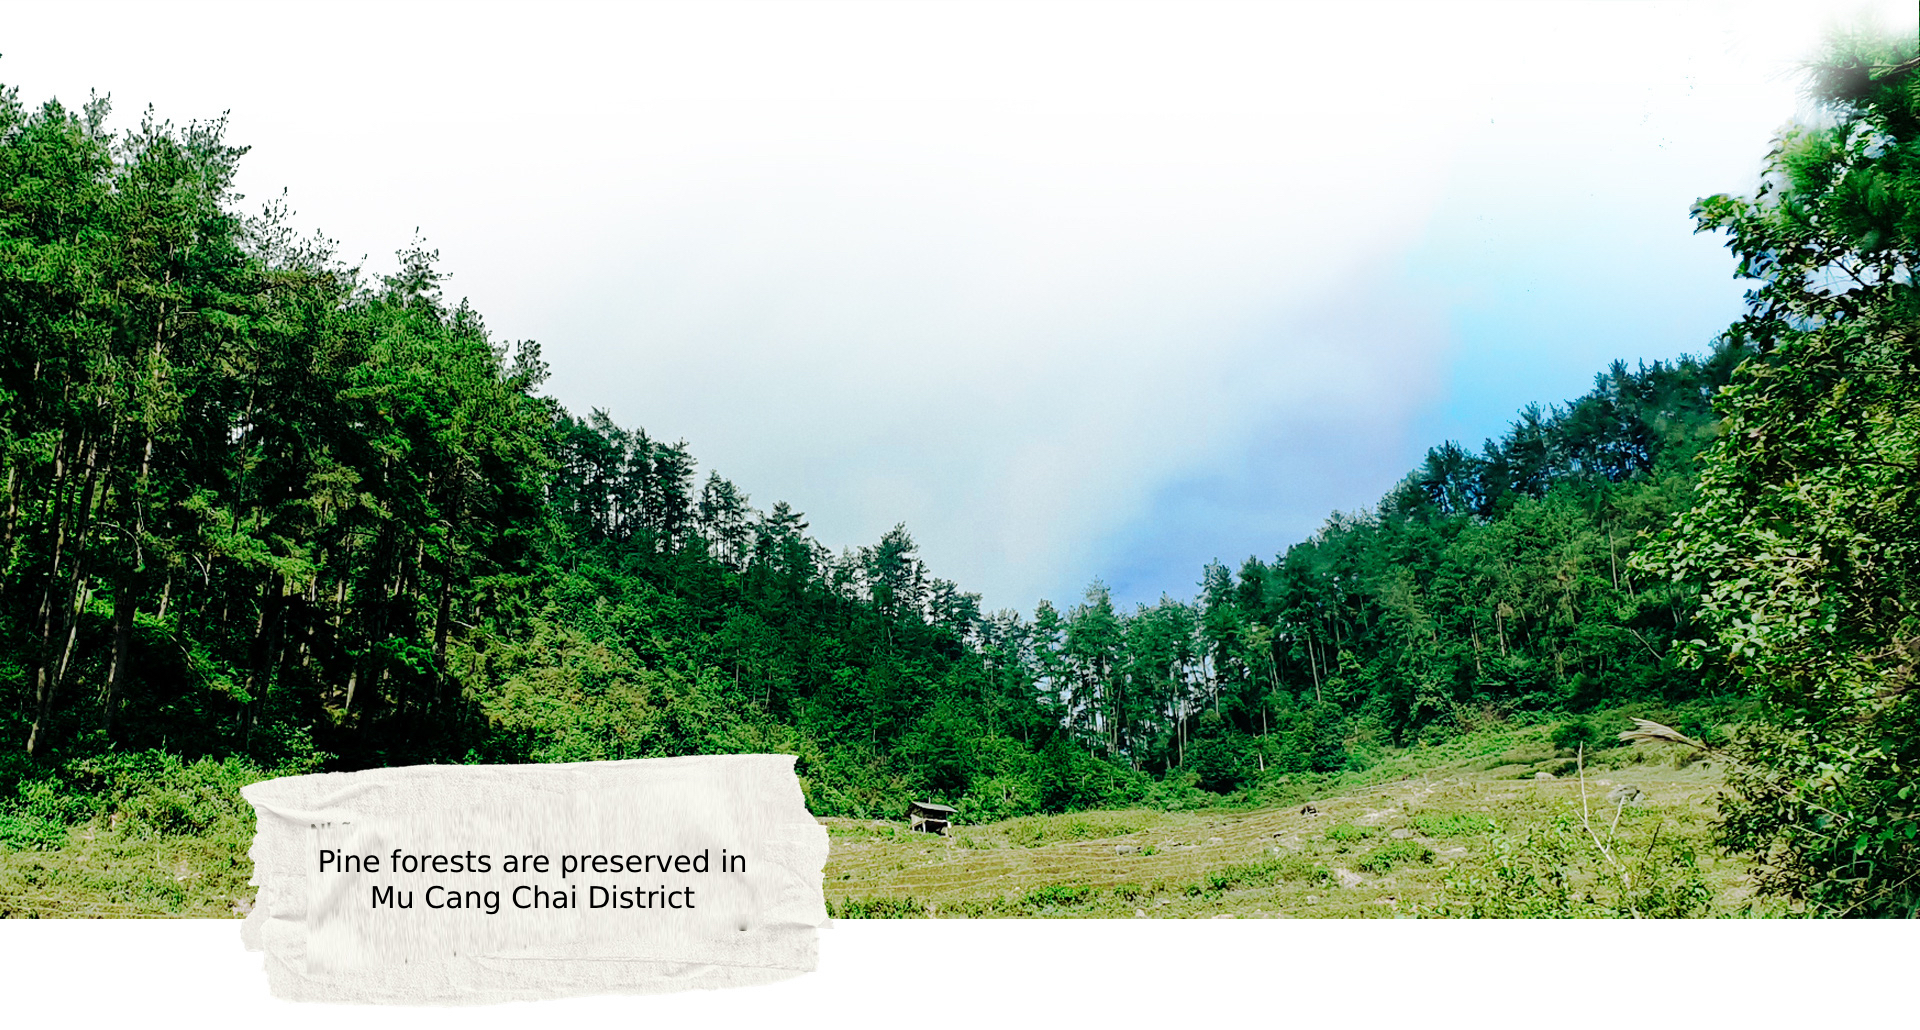 Pine forests are preserved in Mu Cang Chai District, Yen Bai Province, Vietnam. Photo: Viet Dung / Tuoi Tre